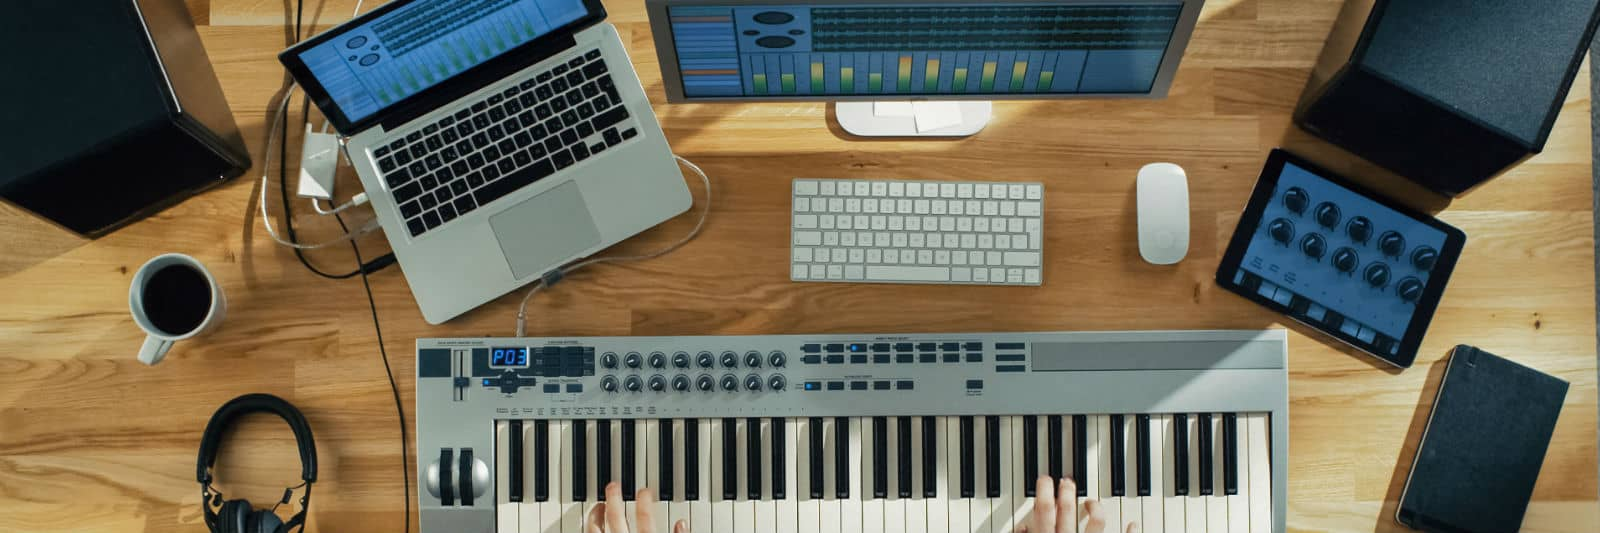 Best Computers For Music Production and Audio Recording | Music Repo